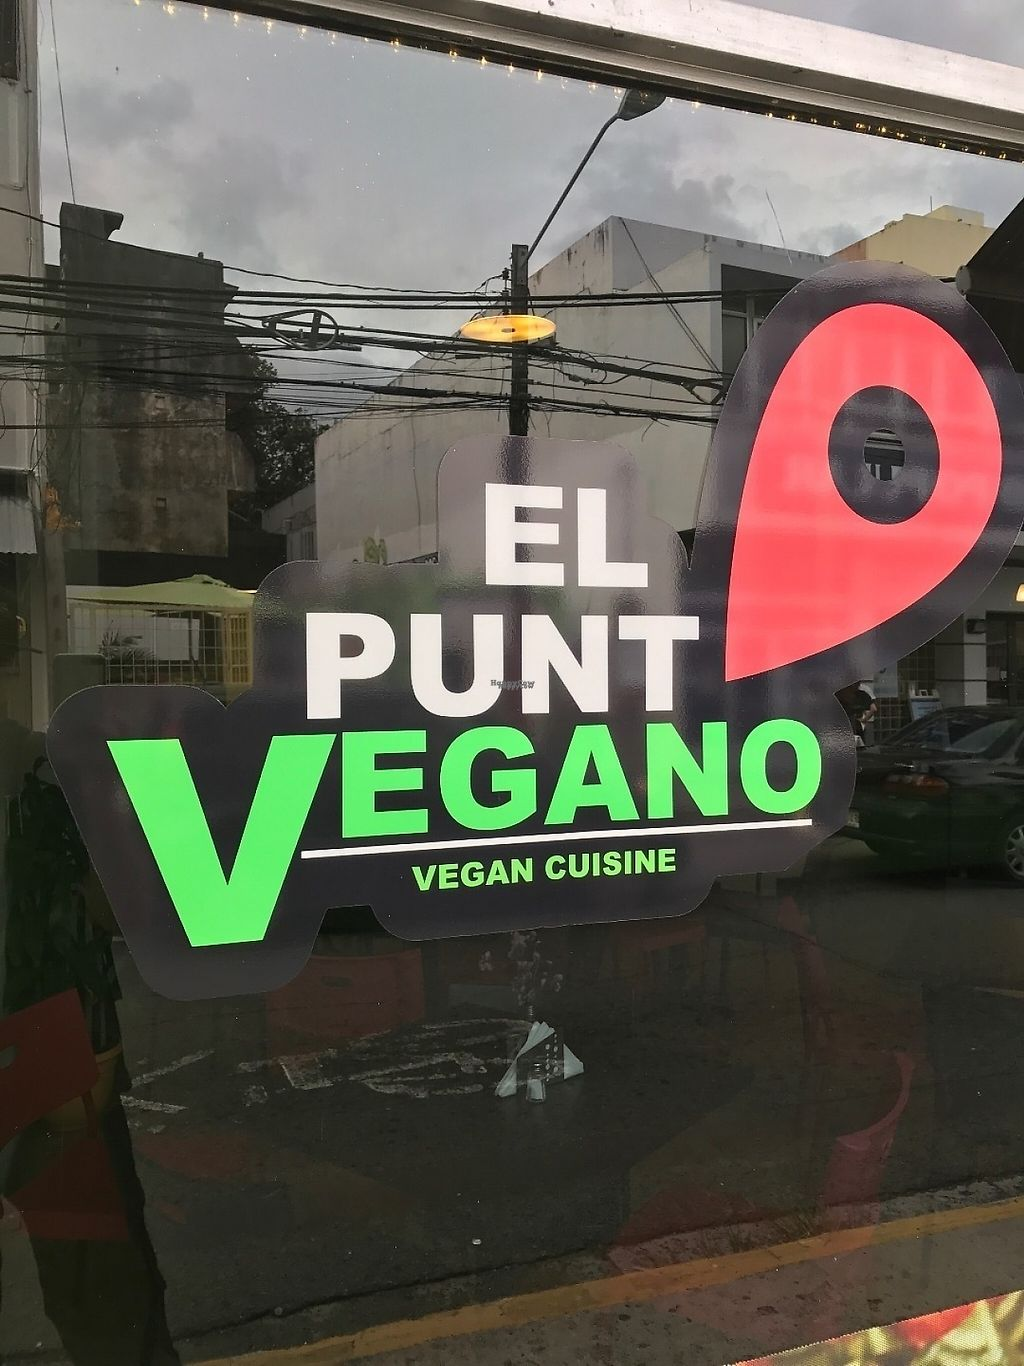 """Photo of El Punto Vegano  by <a href=""""/members/profile/DrewRoss"""">DrewRoss</a> <br/>El Punto Vegan <br/> April 28, 2017  - <a href='/contact/abuse/image/69301/253566'>Report</a>"""